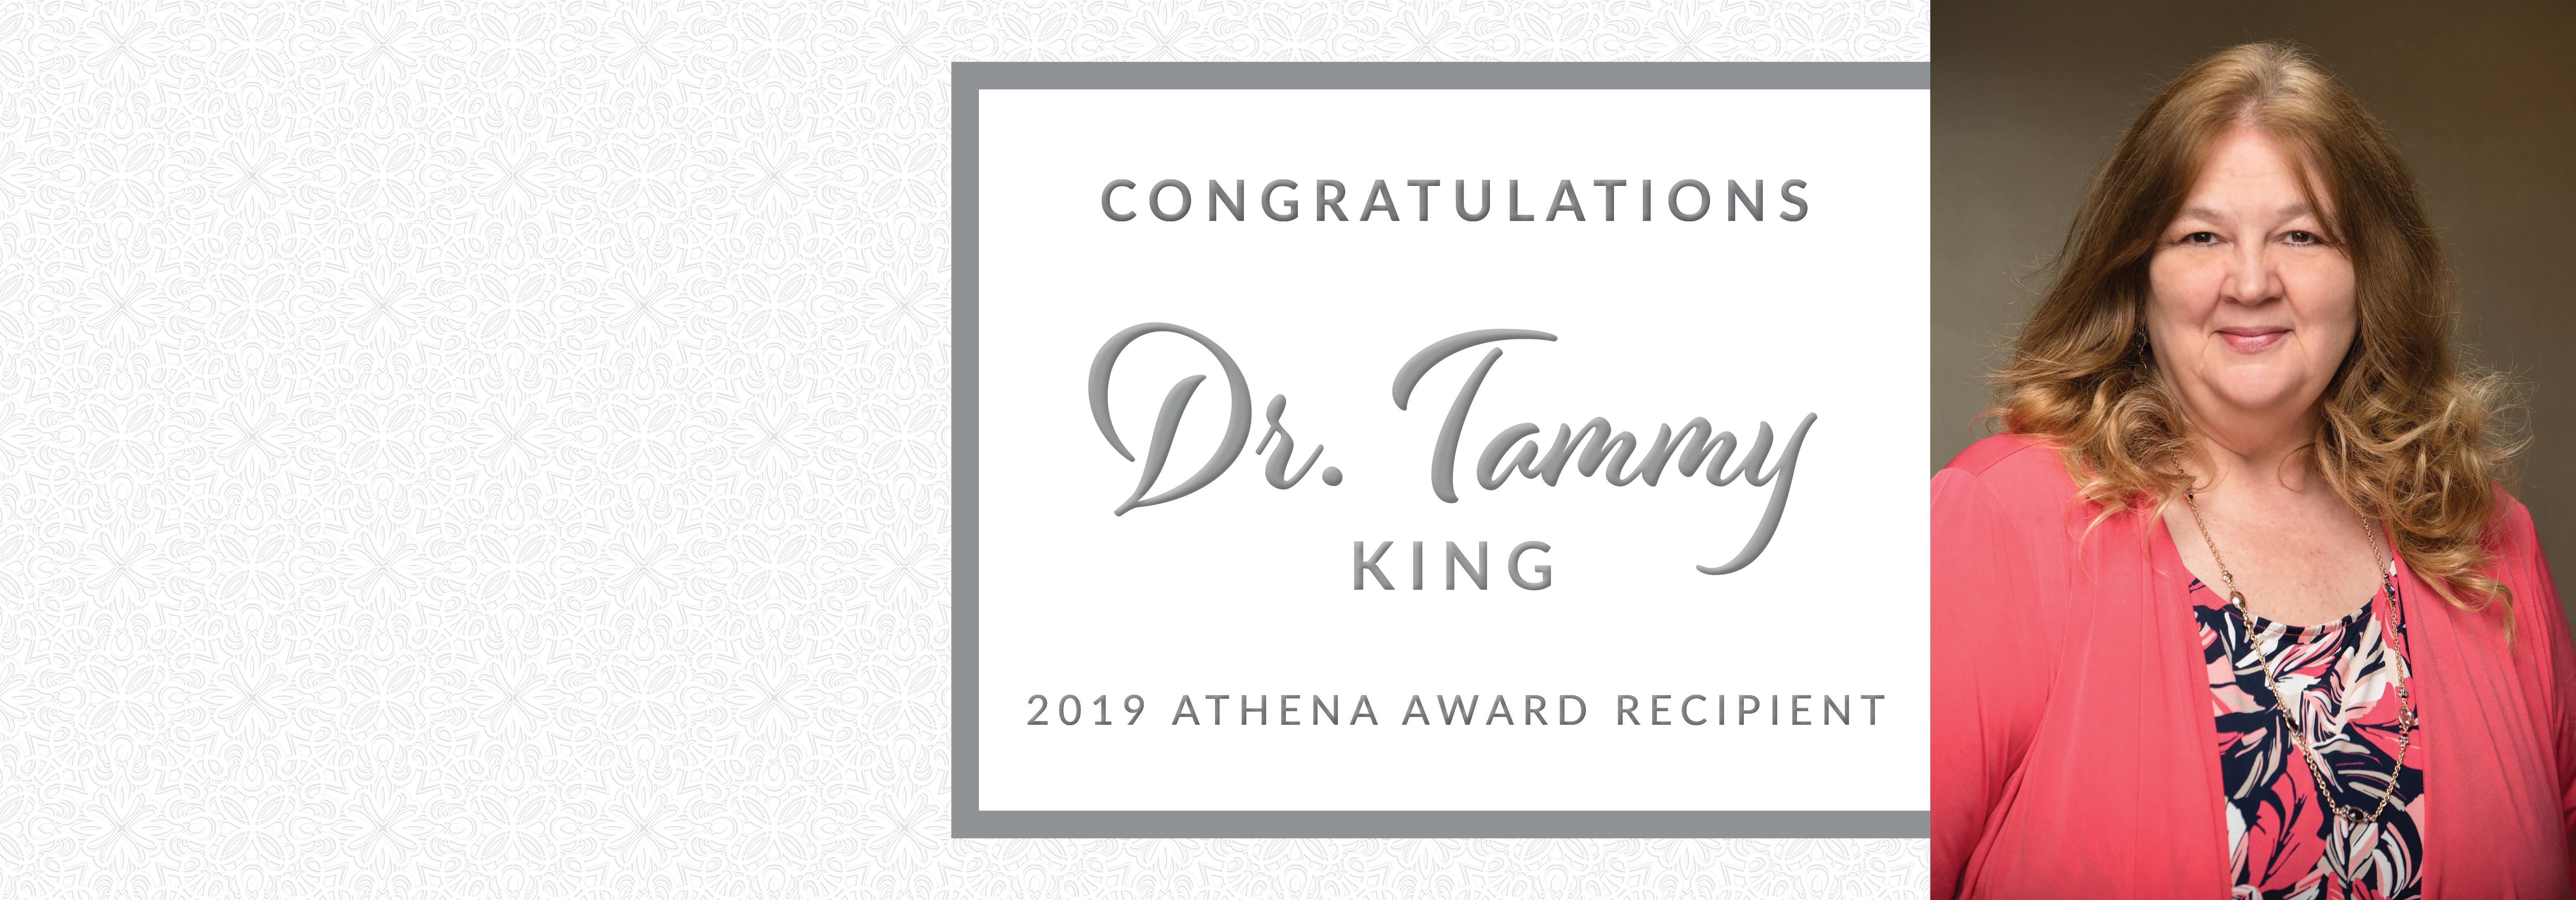 2019 ATHENA WINNER